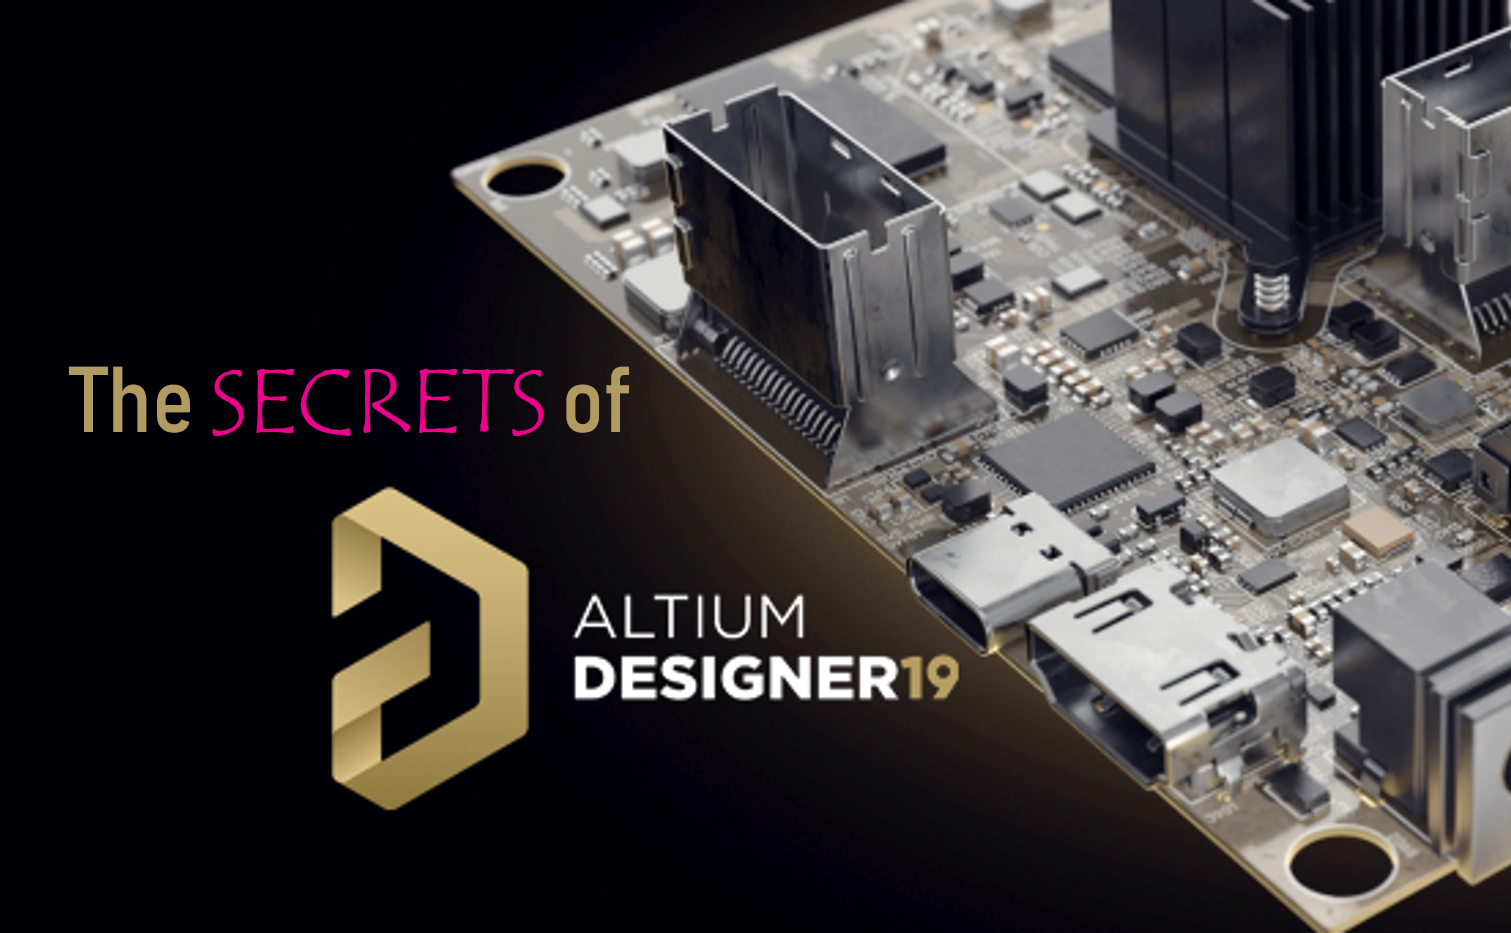 Altium Designer 19 is here